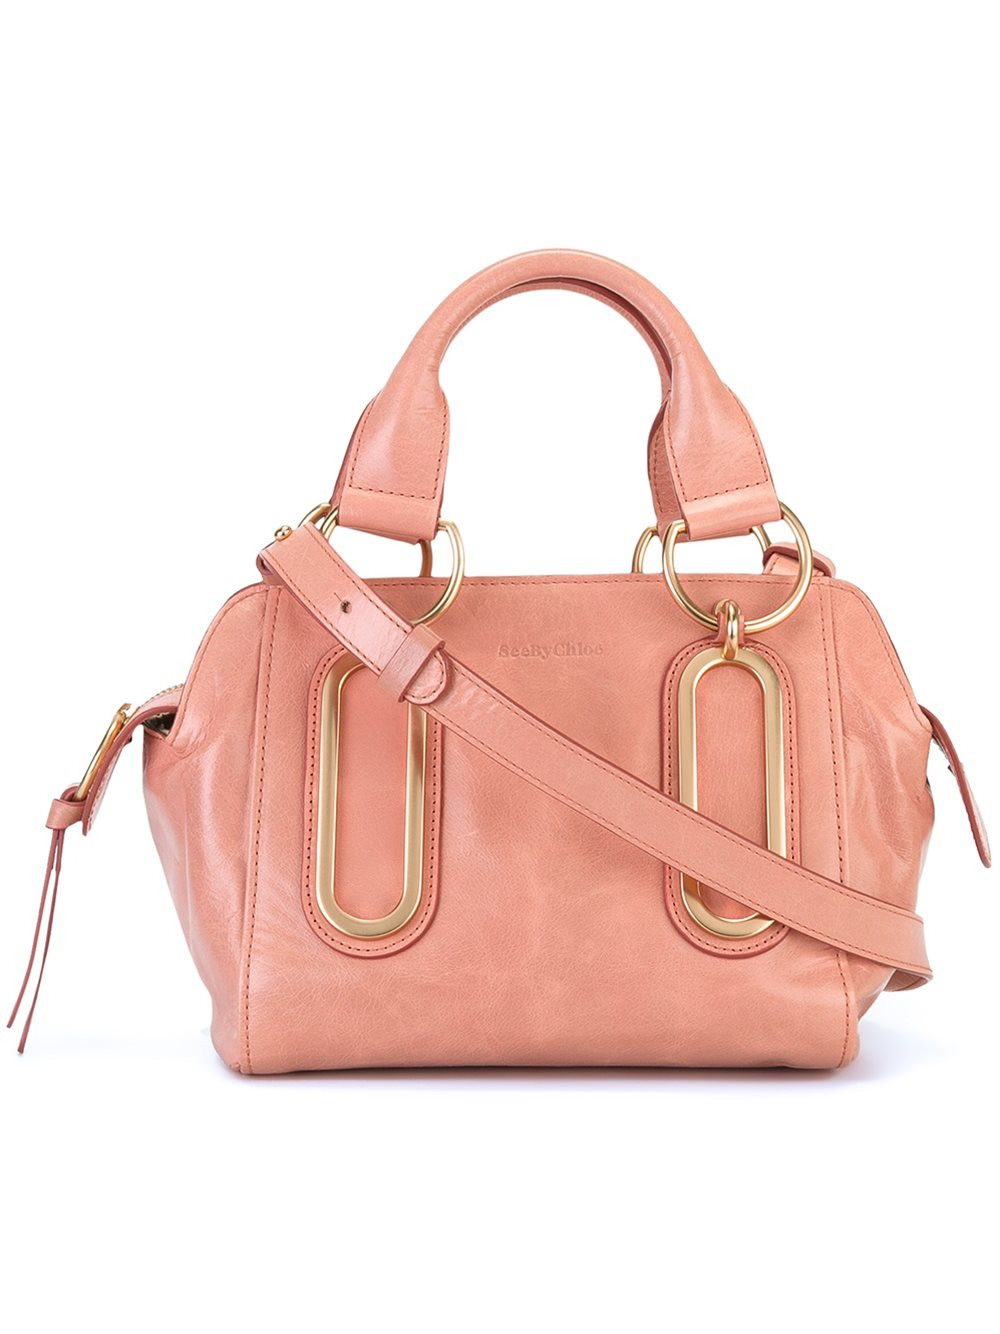 See By Chlo 233 Leather Small Paige Tote In Pink Amp Purple